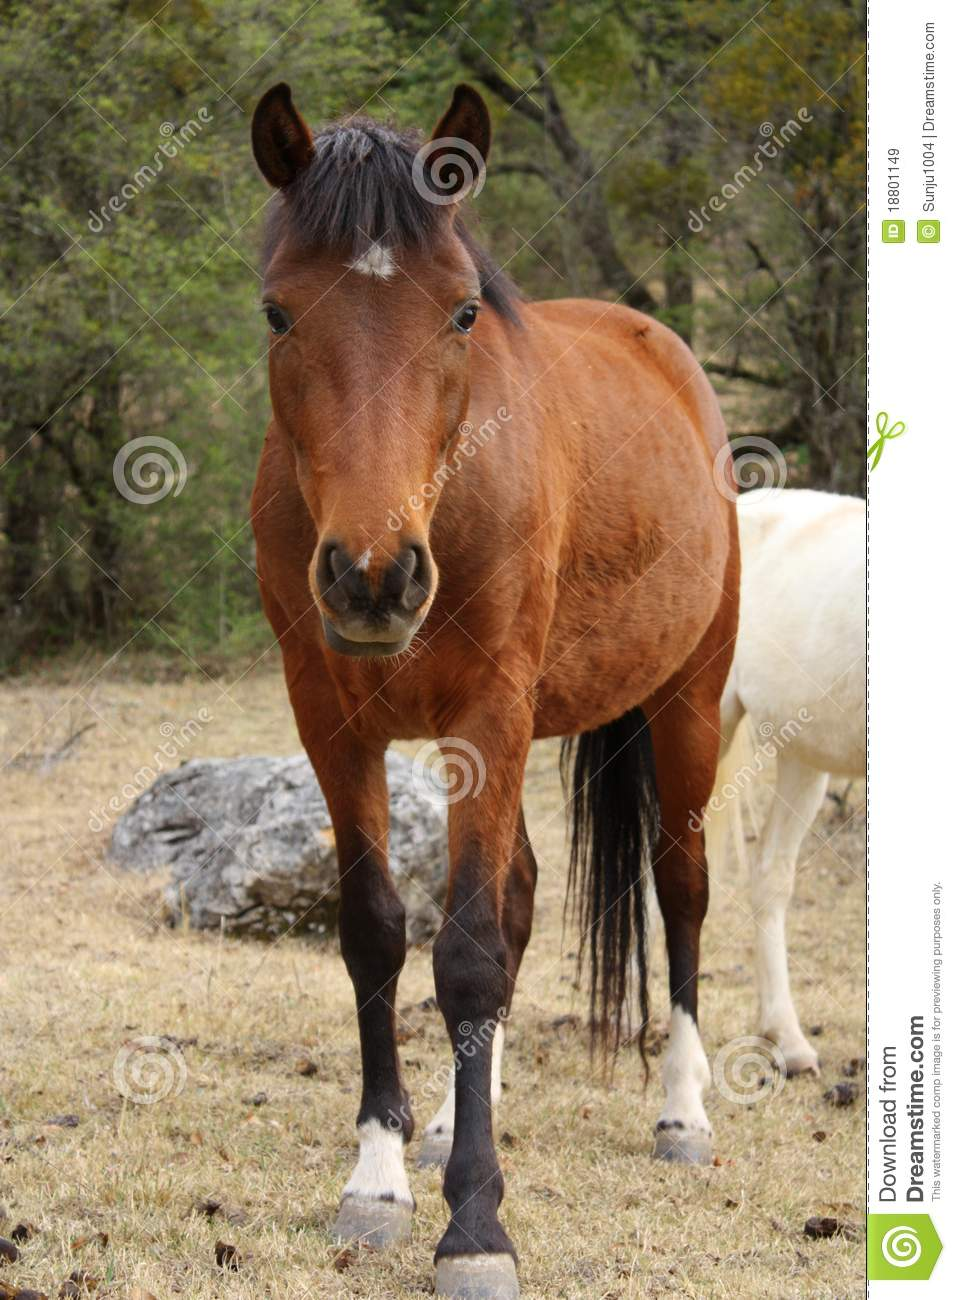 Horse stock image image of farm details fields mammal 18801149 horse royalty free stock photo sciox Choice Image